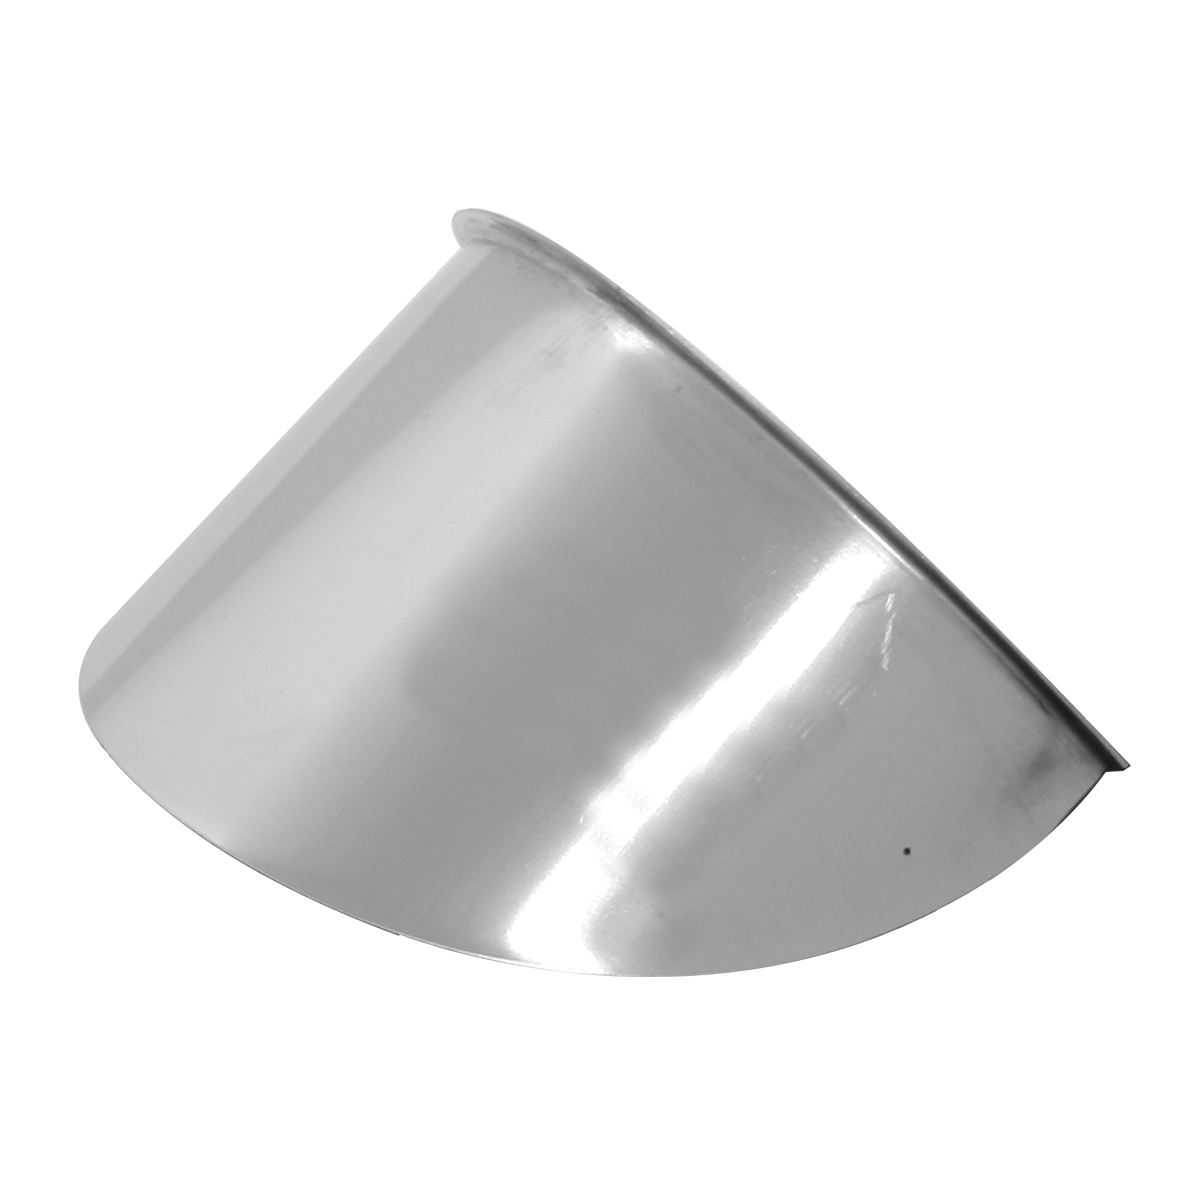 Stainless Steel Small Bullet Glass Marker Light Visor – Up